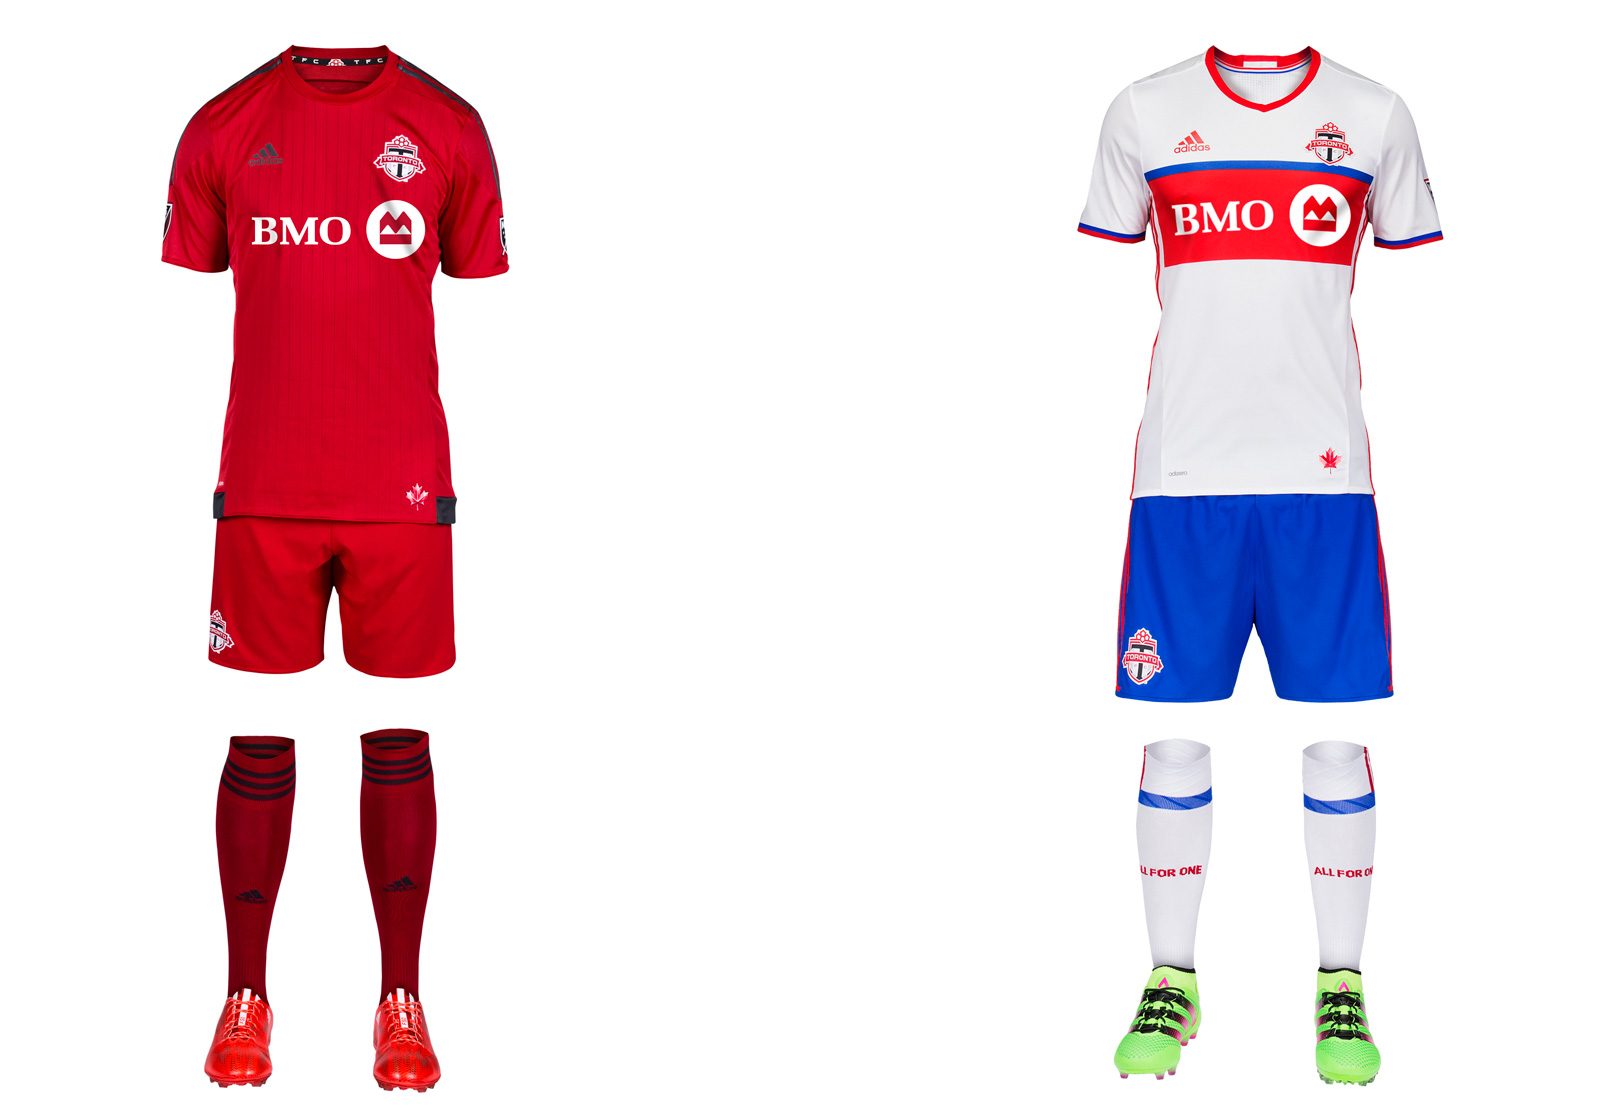 Entering its 10th season, TFC will include blue in its uniform for the first time. The club's new away uniform is a colorful nod to the city and its soccer past. Toronto's flag and its NHL, MLB and CFL teams are primarily blue, and the NASL's Metros-Croatia and Blizzard wore red and blue in the 1970s and '80s. The kit stands out without being garish and means something to the club. Well done, TFC. It also can be worn with red shorts. Gone is the classy dark gray, which we wish was more prominent in the all-red primary.